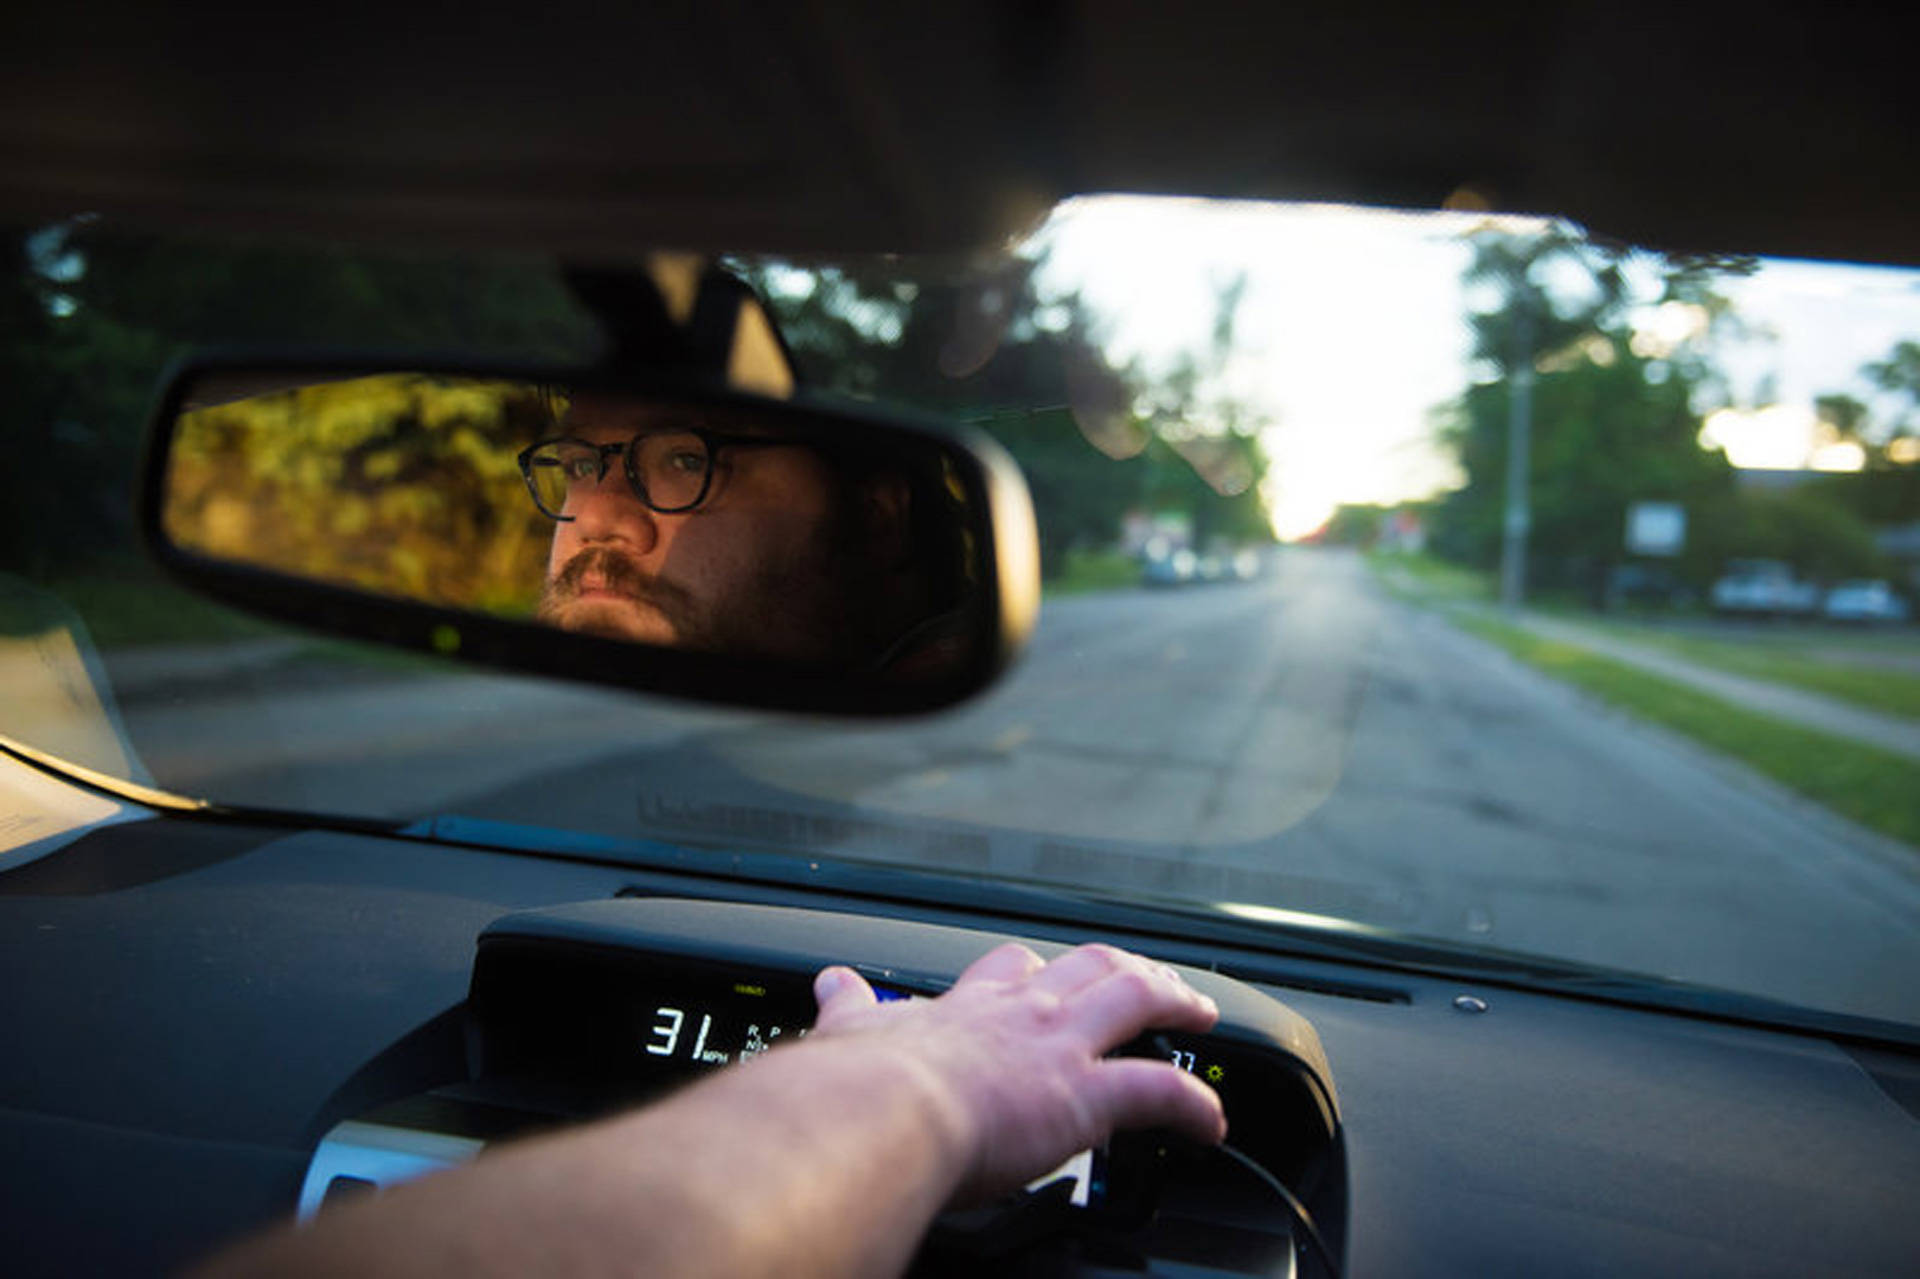 Kyle Reninger drives for Uber part time, typically on weekend nights, so he is more likely to pick up surge prices, which earn him more money. He also drives for Lyft, an Uber competitor. Lucas Carter for NPR